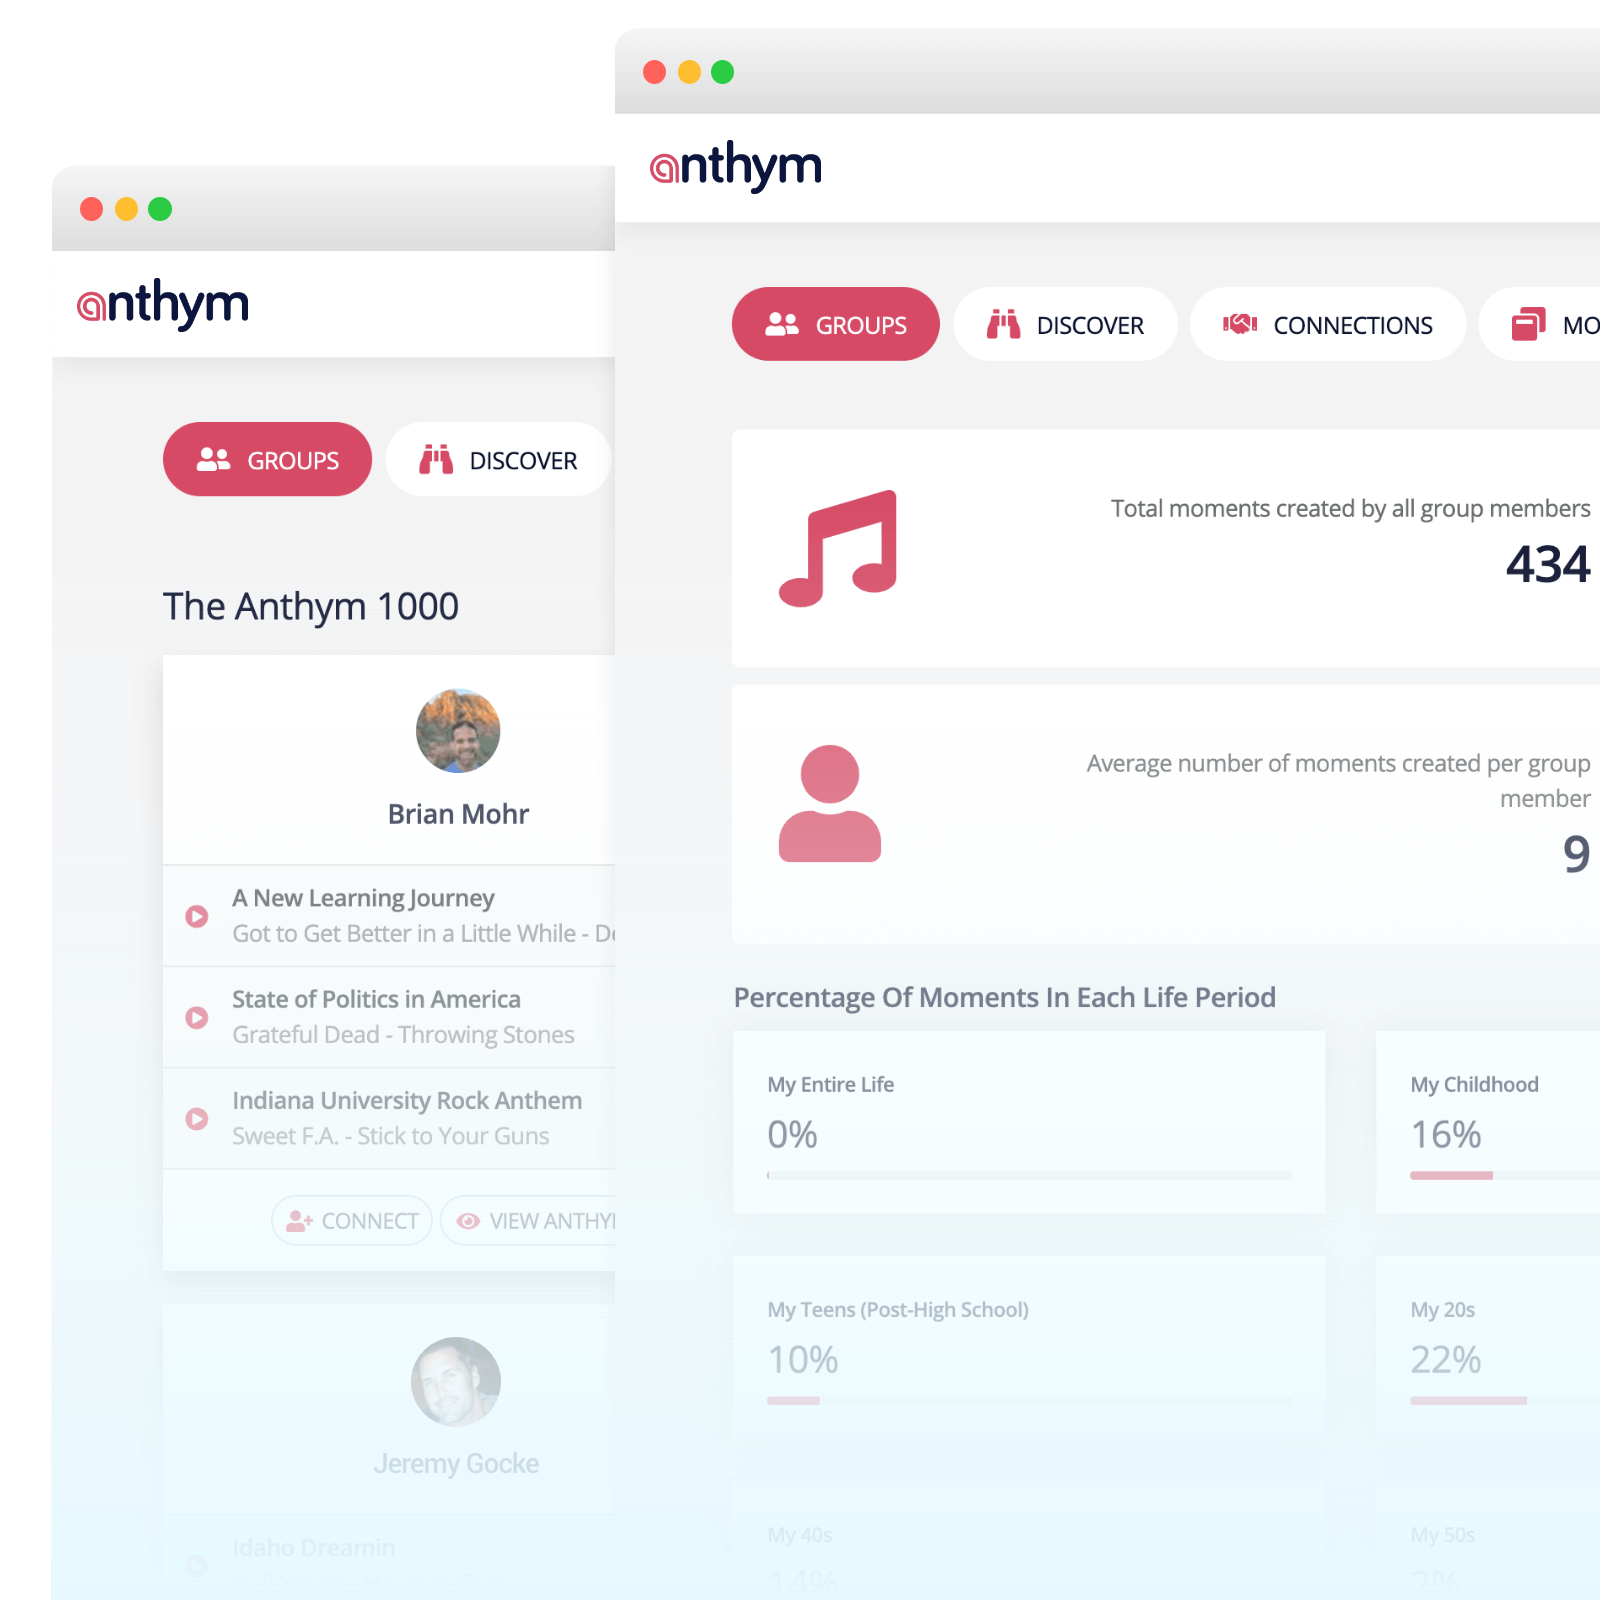 anthym-product-large-screen